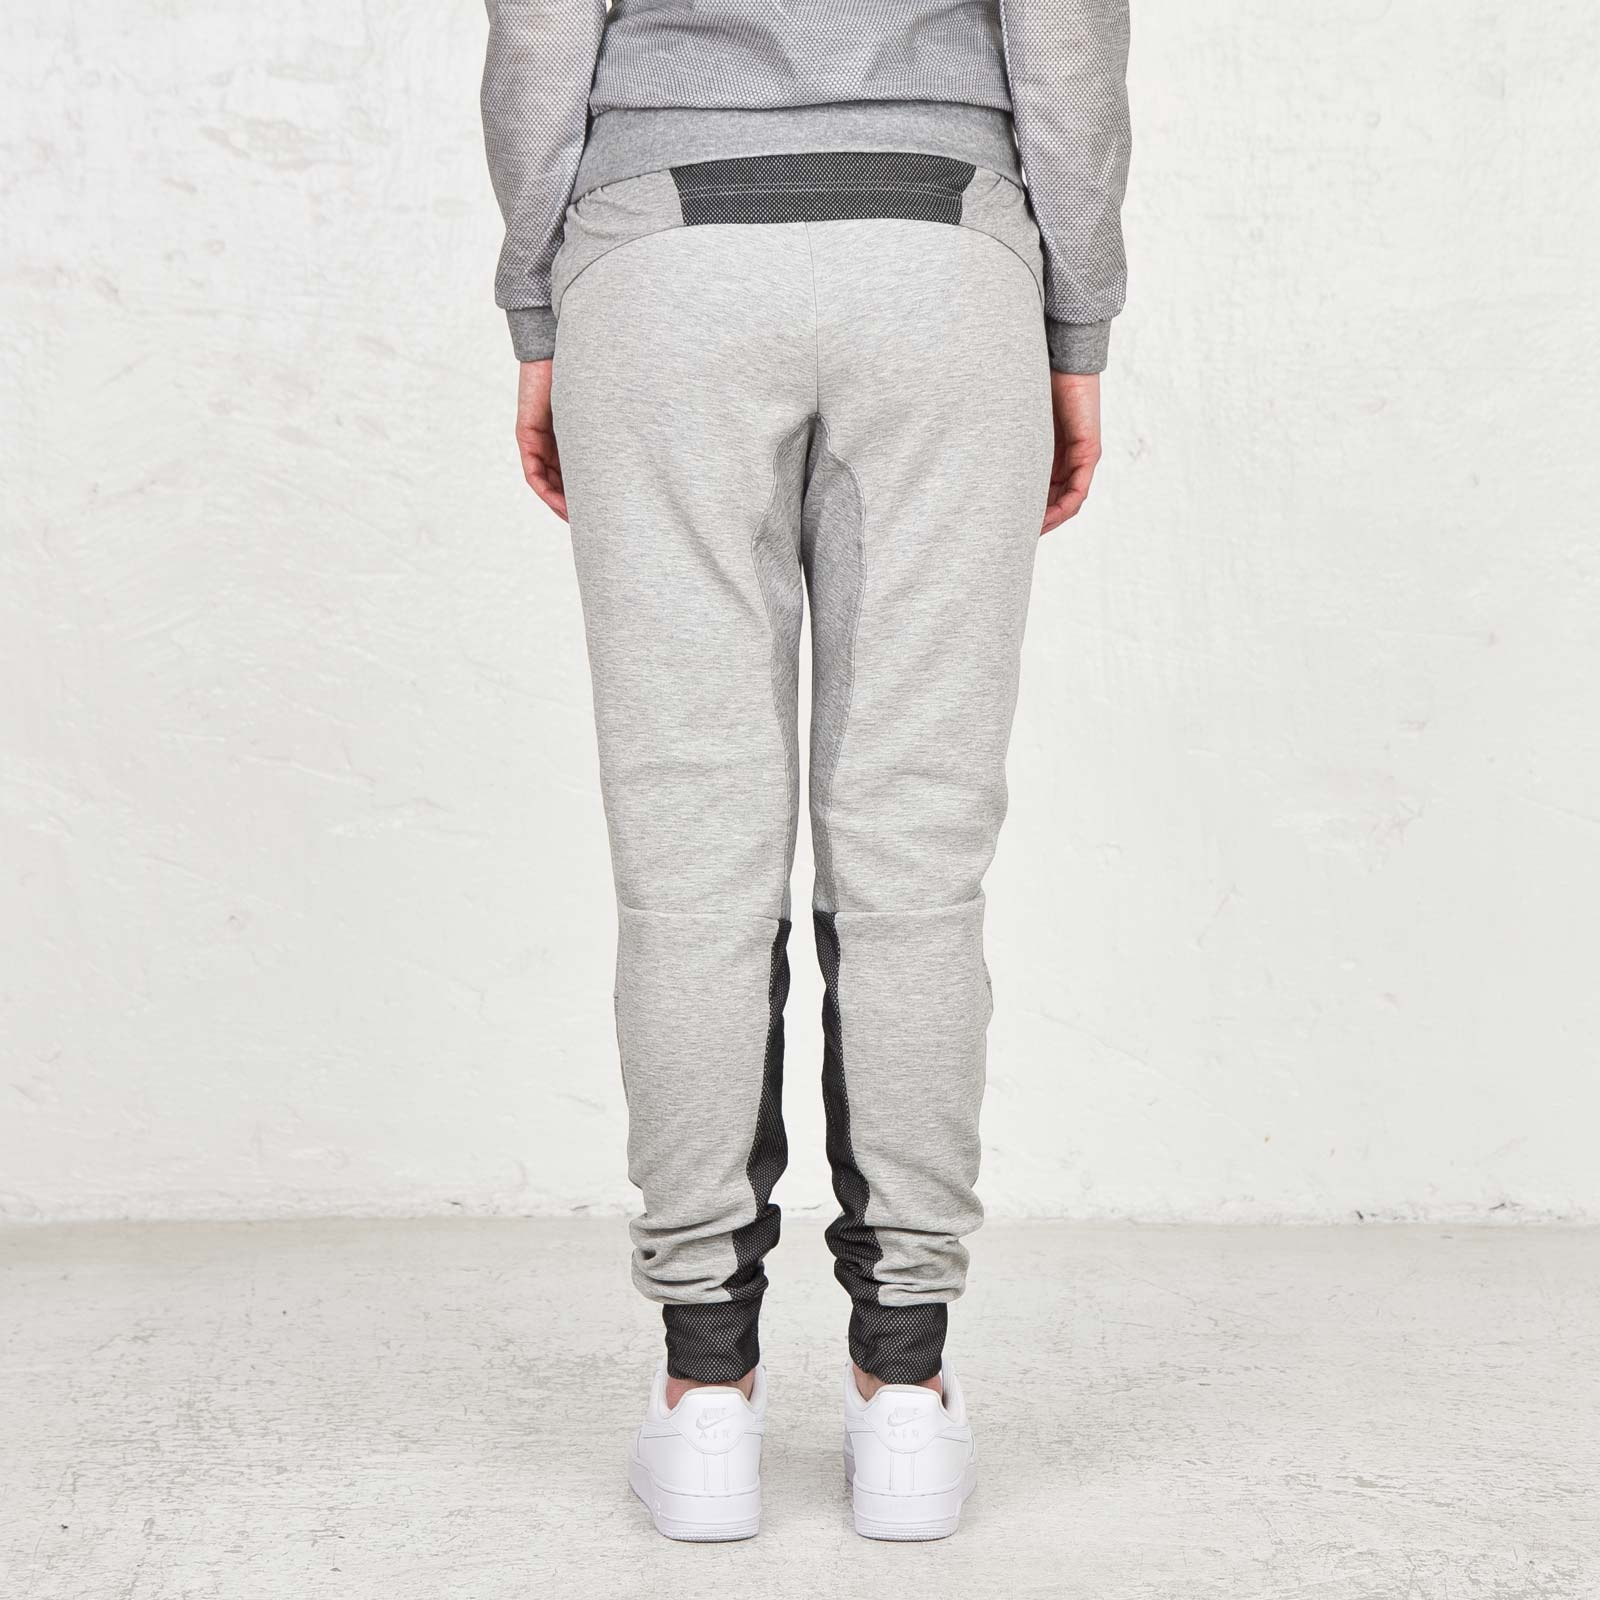 081a5b7b9716 Nike Mesh Tech Fleece Pant - 704661-063 - Sneakersnstuff